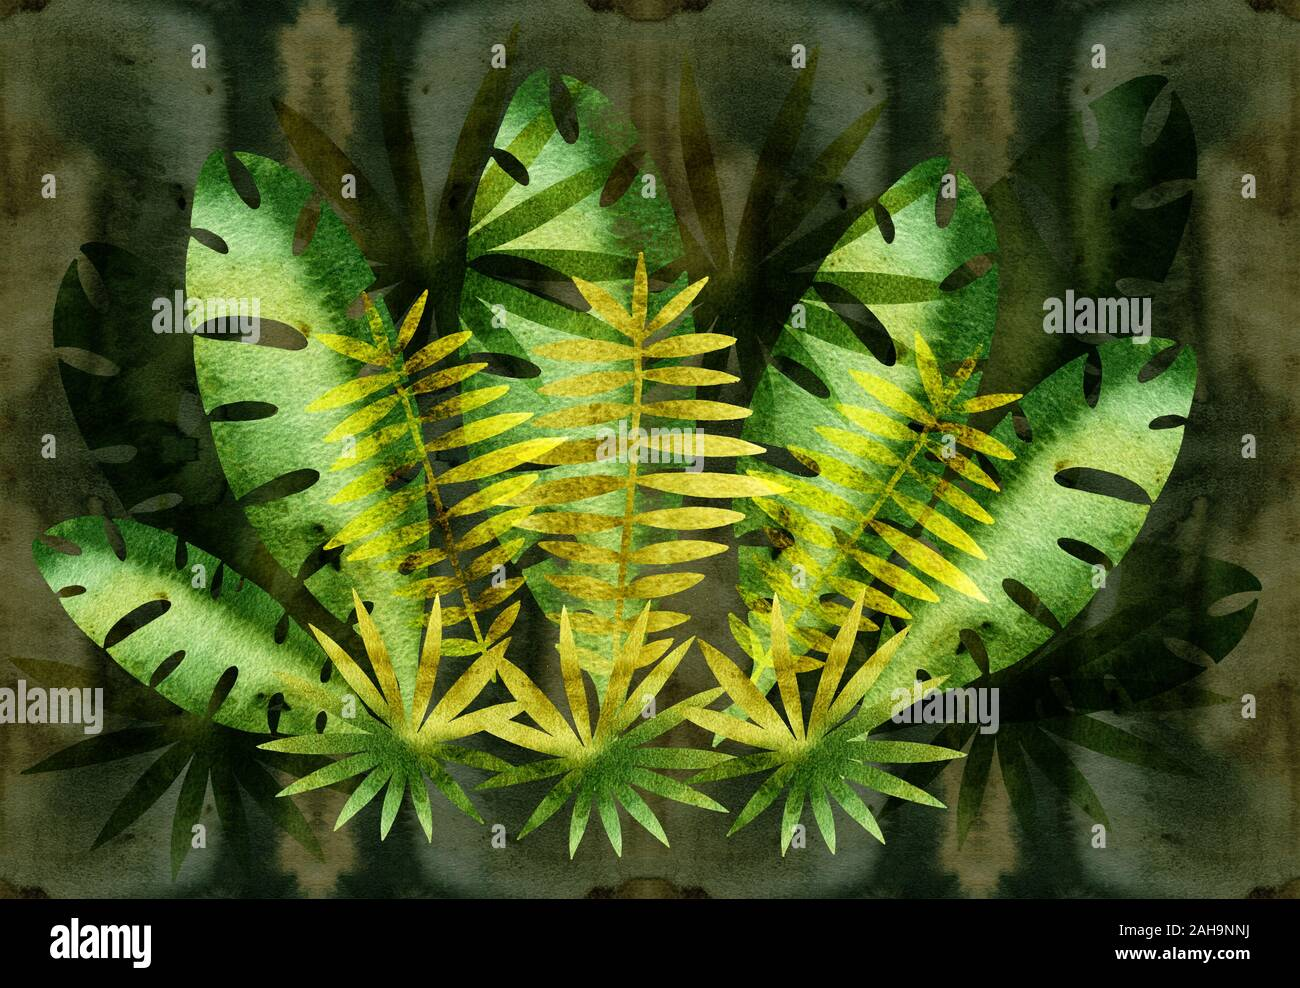 Jungle Plants Drawing High Resolution Stock Photography And Images Alamy